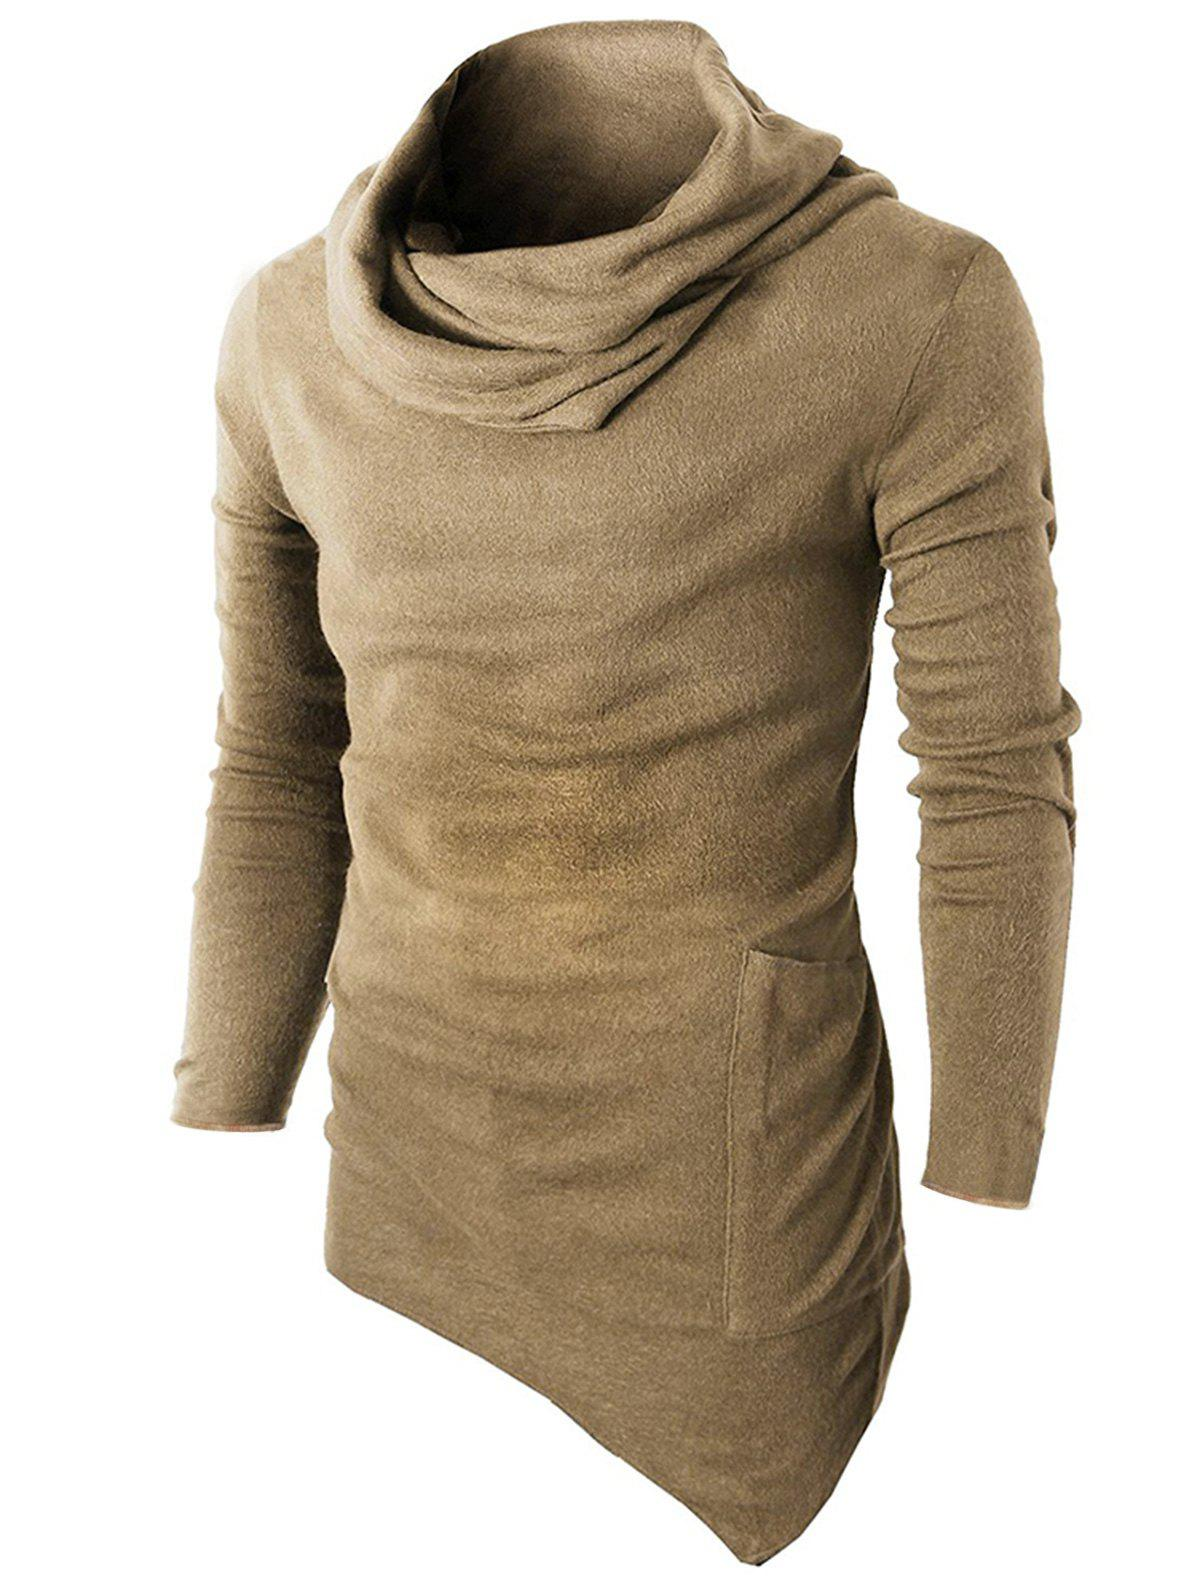 New Cowl Neck Asymmetric Sweater with Side Pocket